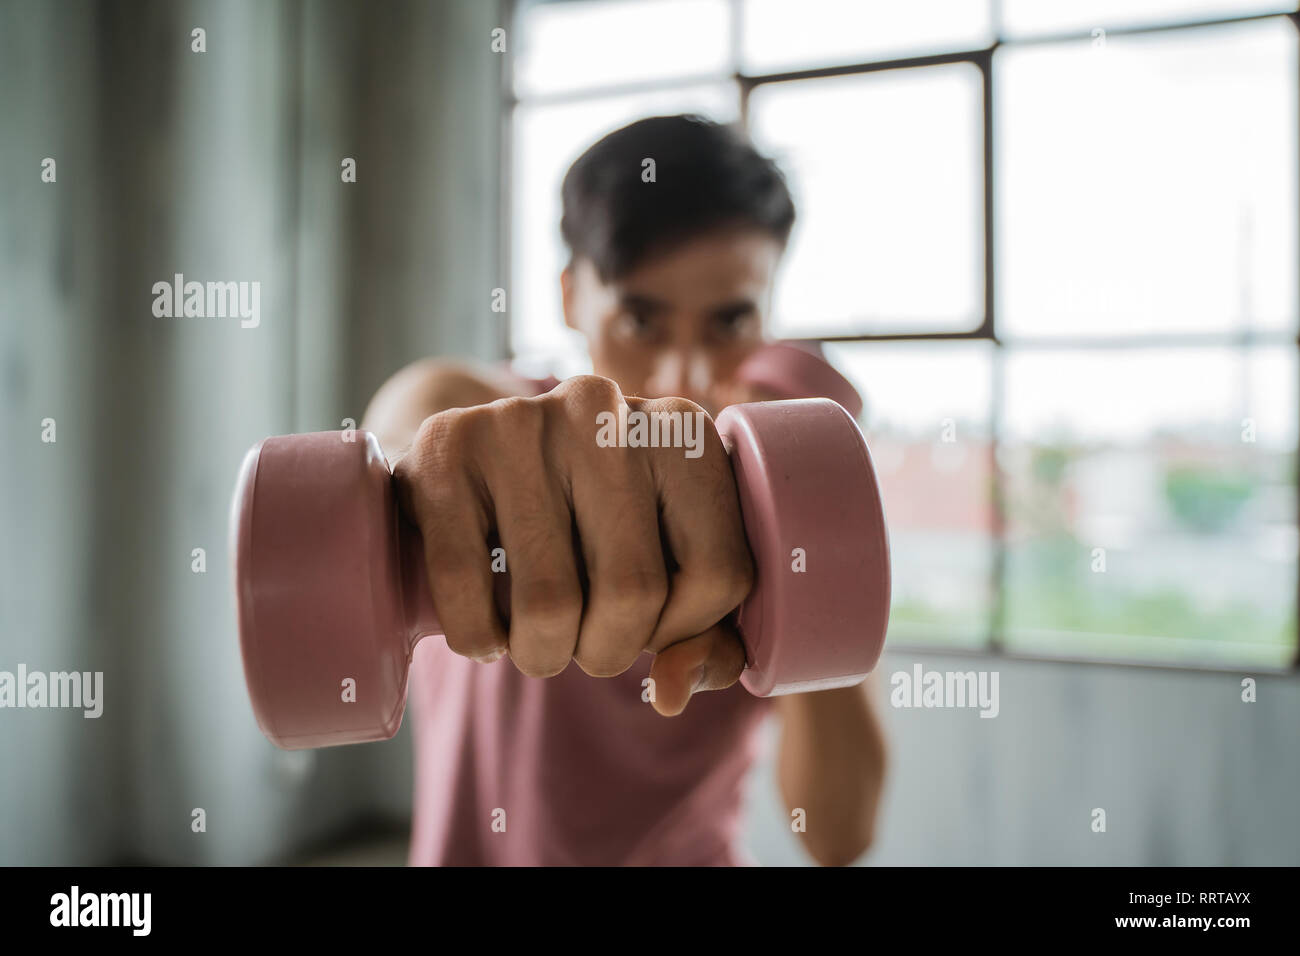 dumbbell punch towards the camera - Stock Image